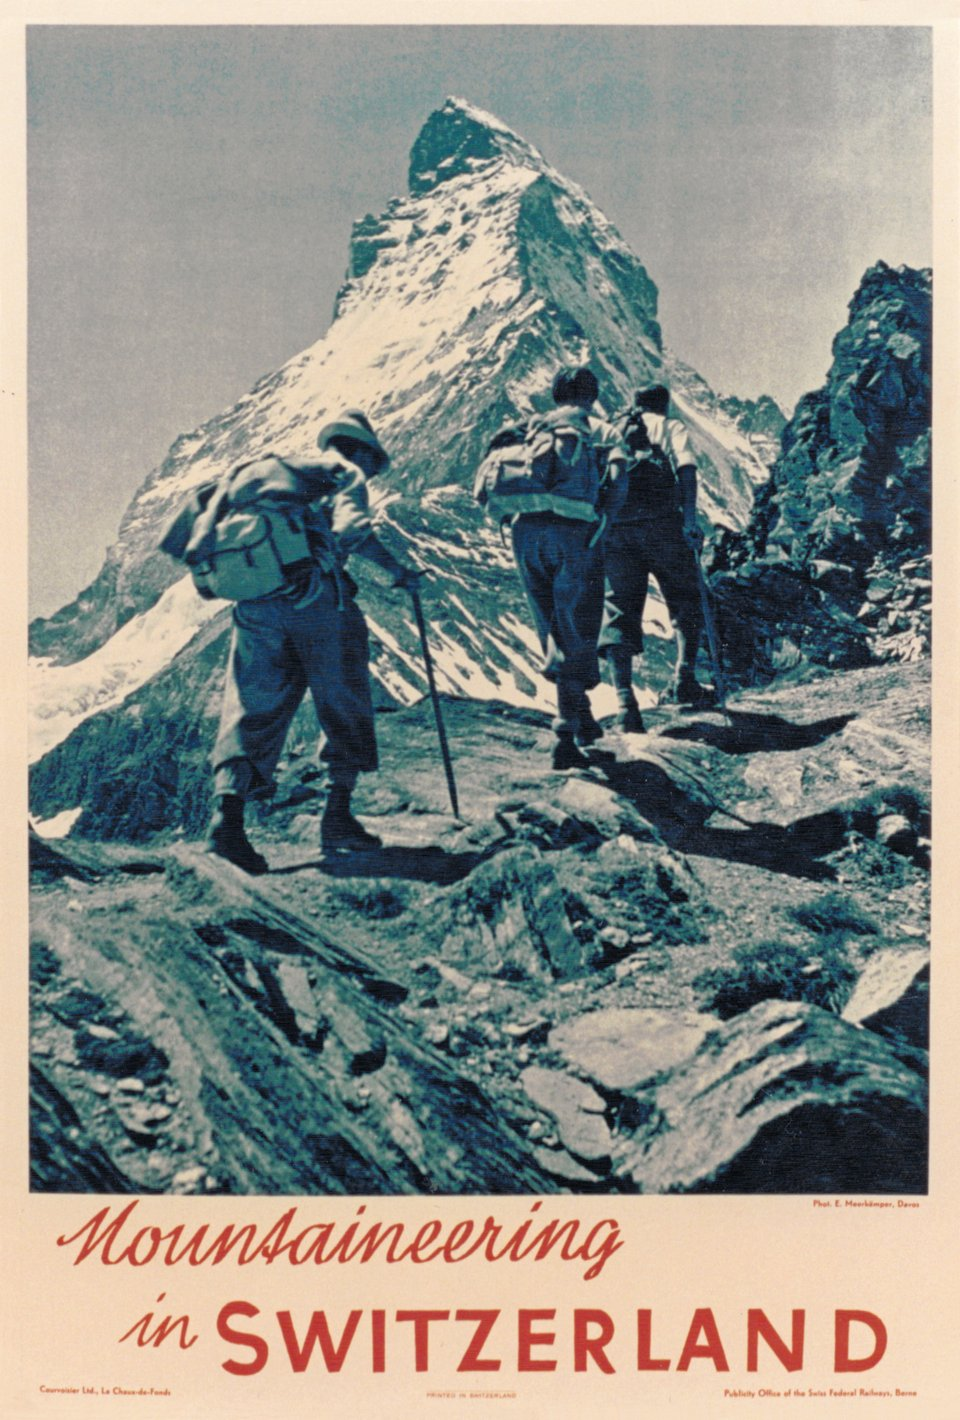 Mountaineering in Switzerland – Affiche ancienne – Emil MEERKAMPER – 1937